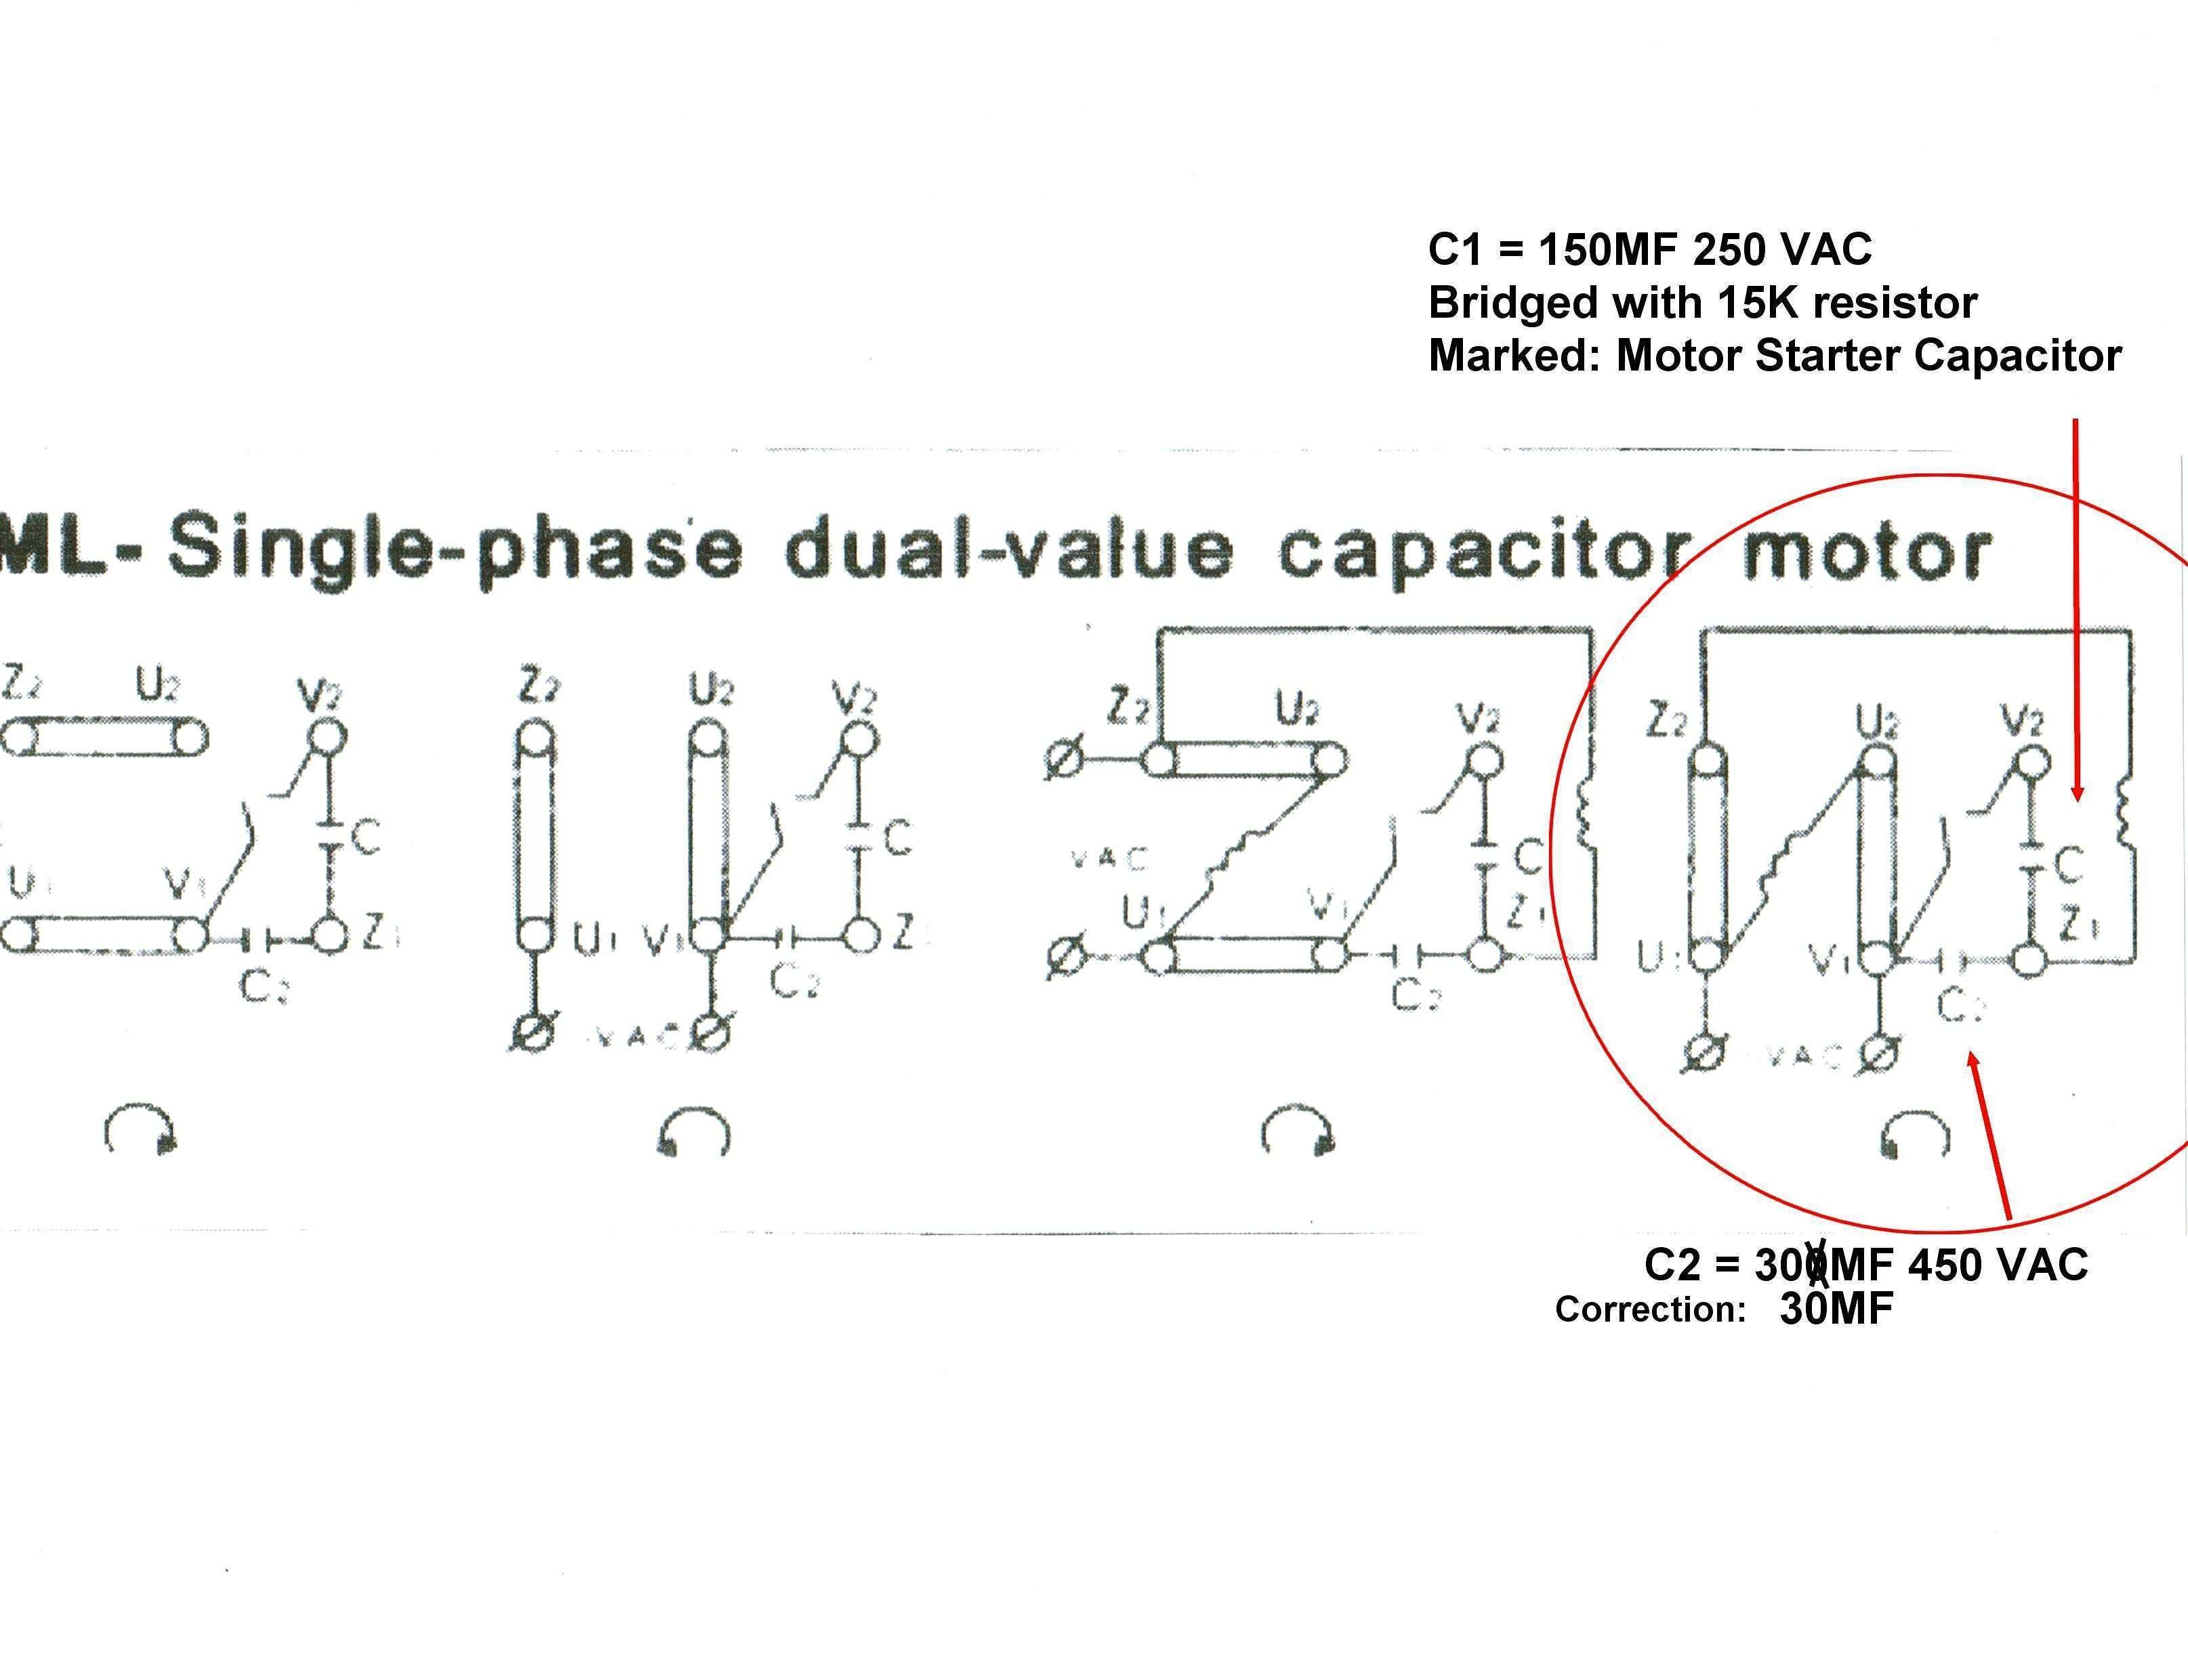 3 phase 6 lead motor wiring diagram Collection-3 Phase Motor Wiring Diagram 9 Leads Perfect Luxury 9 Lead Motor Wiring Diagram Pattern Electrical Diagram 7-c